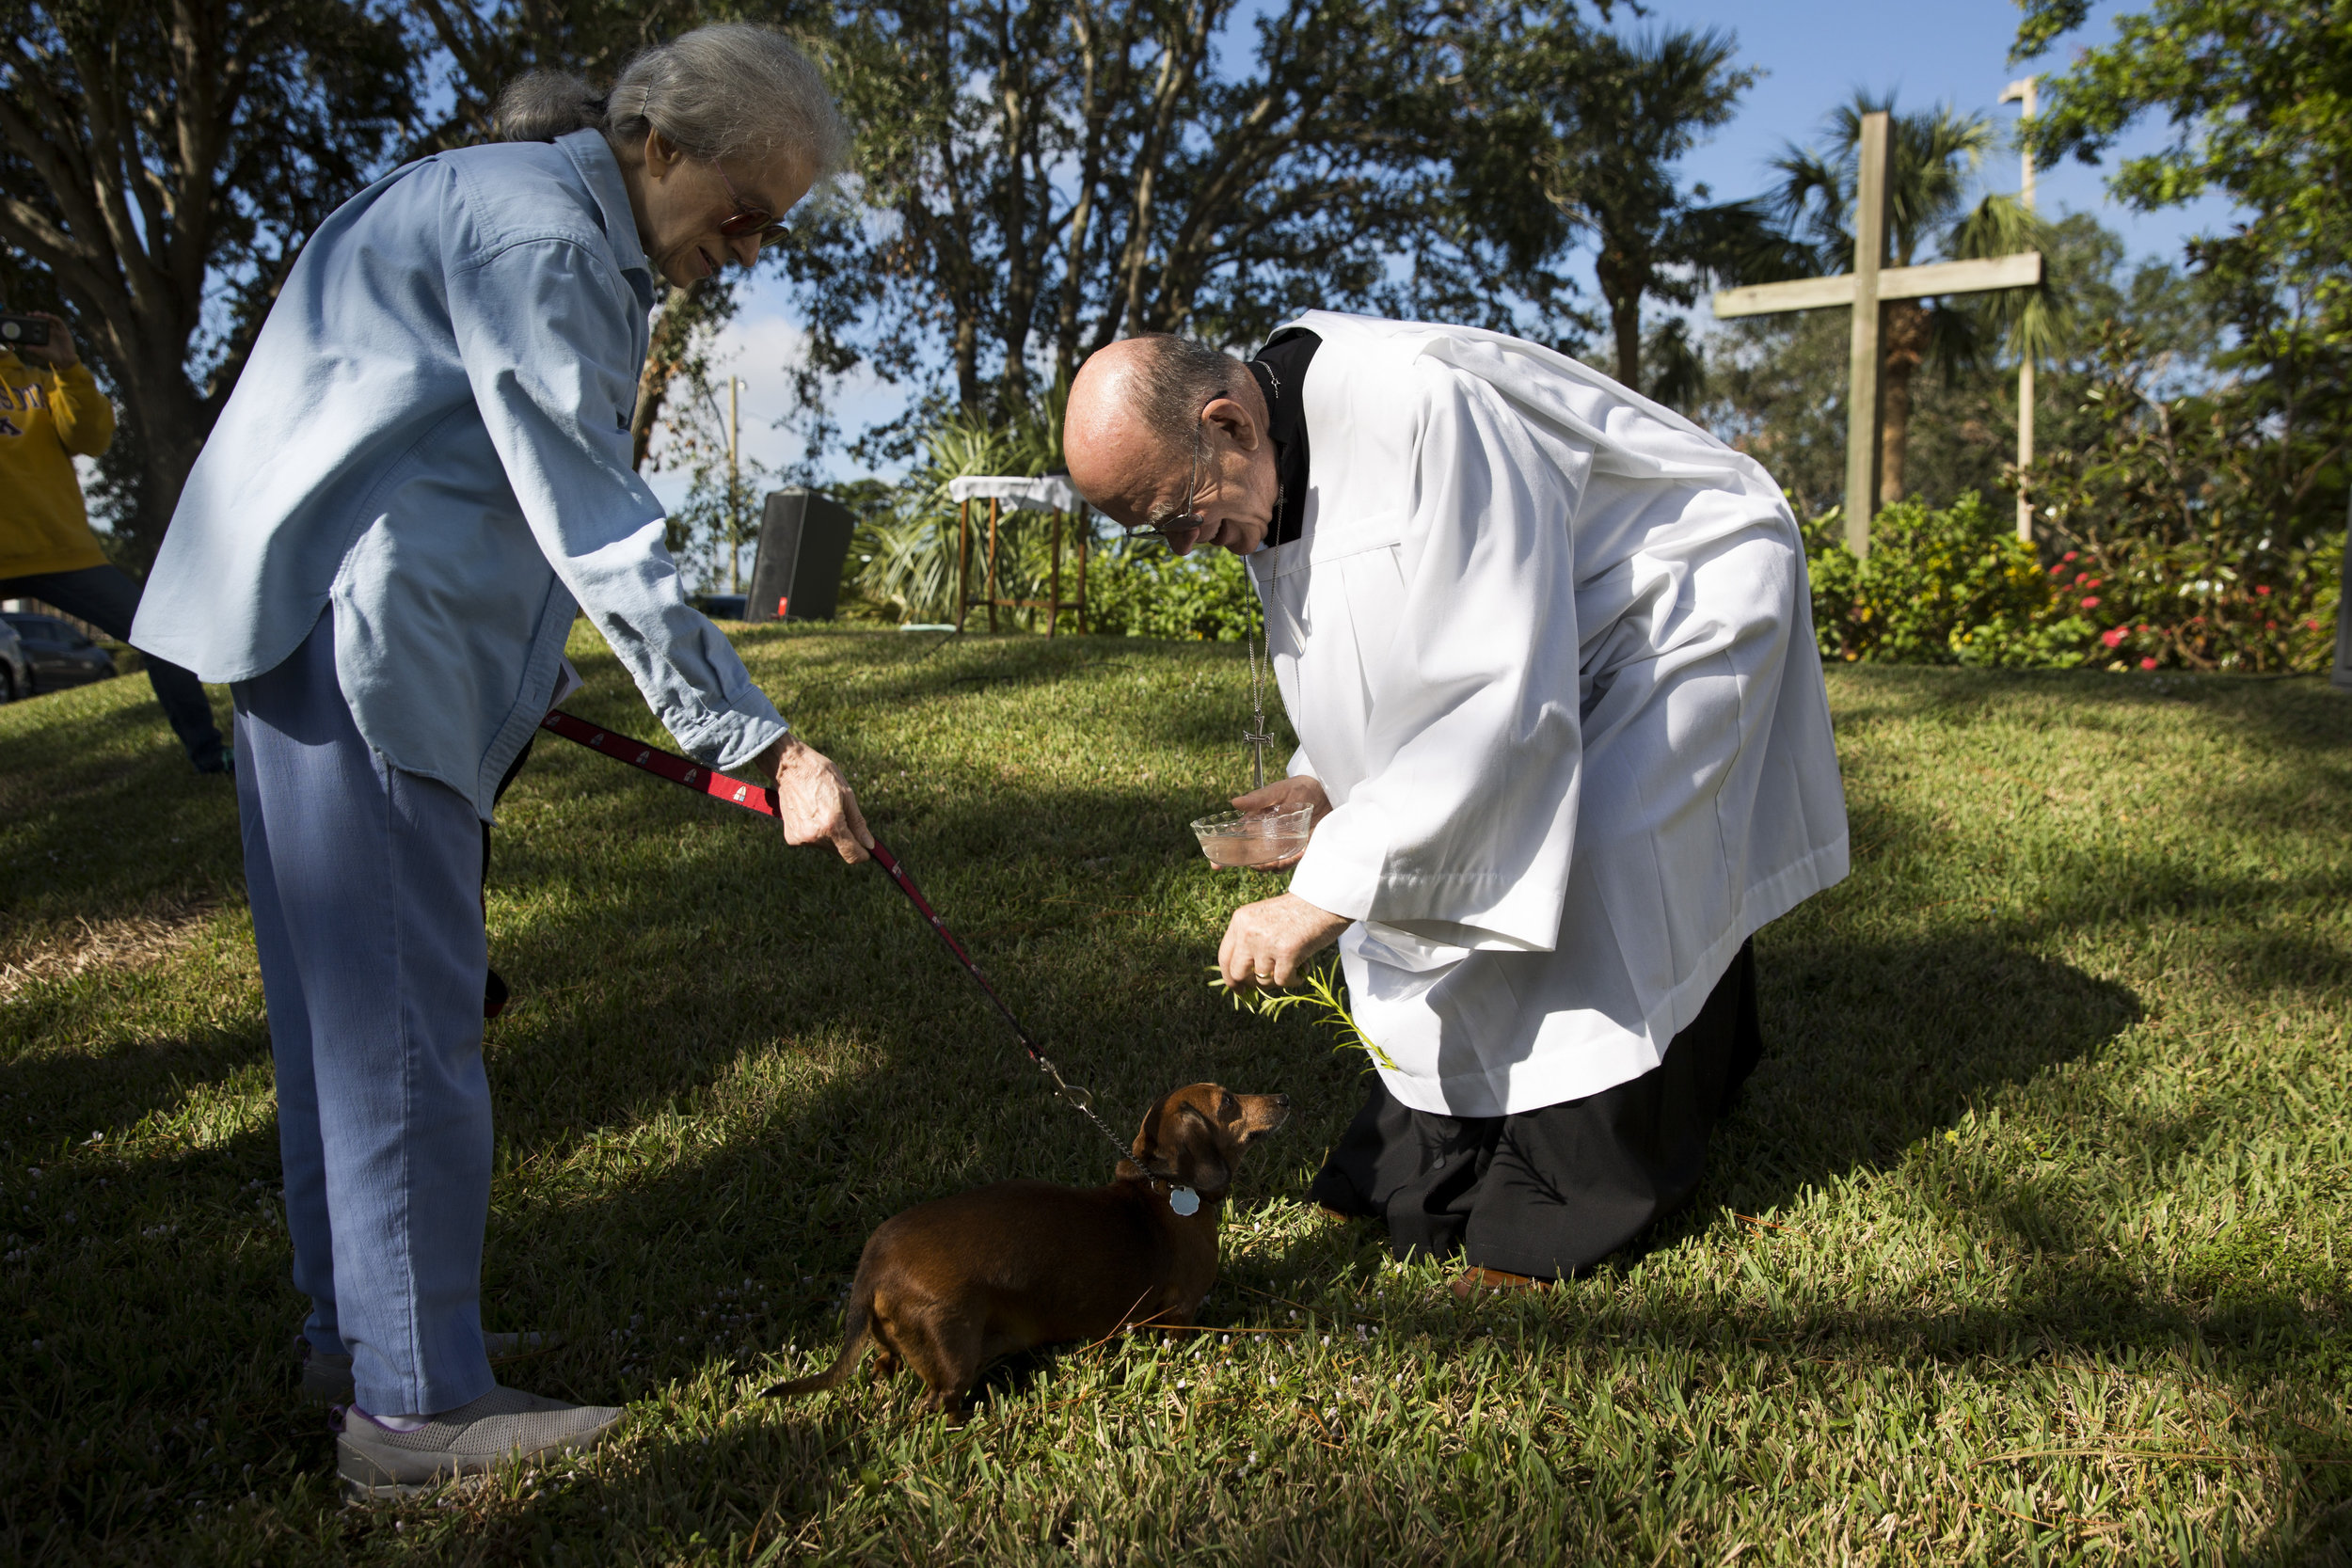 """Father Bill Faupel of St. Paul's Episcopal Church blesses Hazel, a Dachshund, during the church's annual """"Blessing of the Pets"""" service at Saturday, Nov. 25, 2017 in Naples, Fla."""